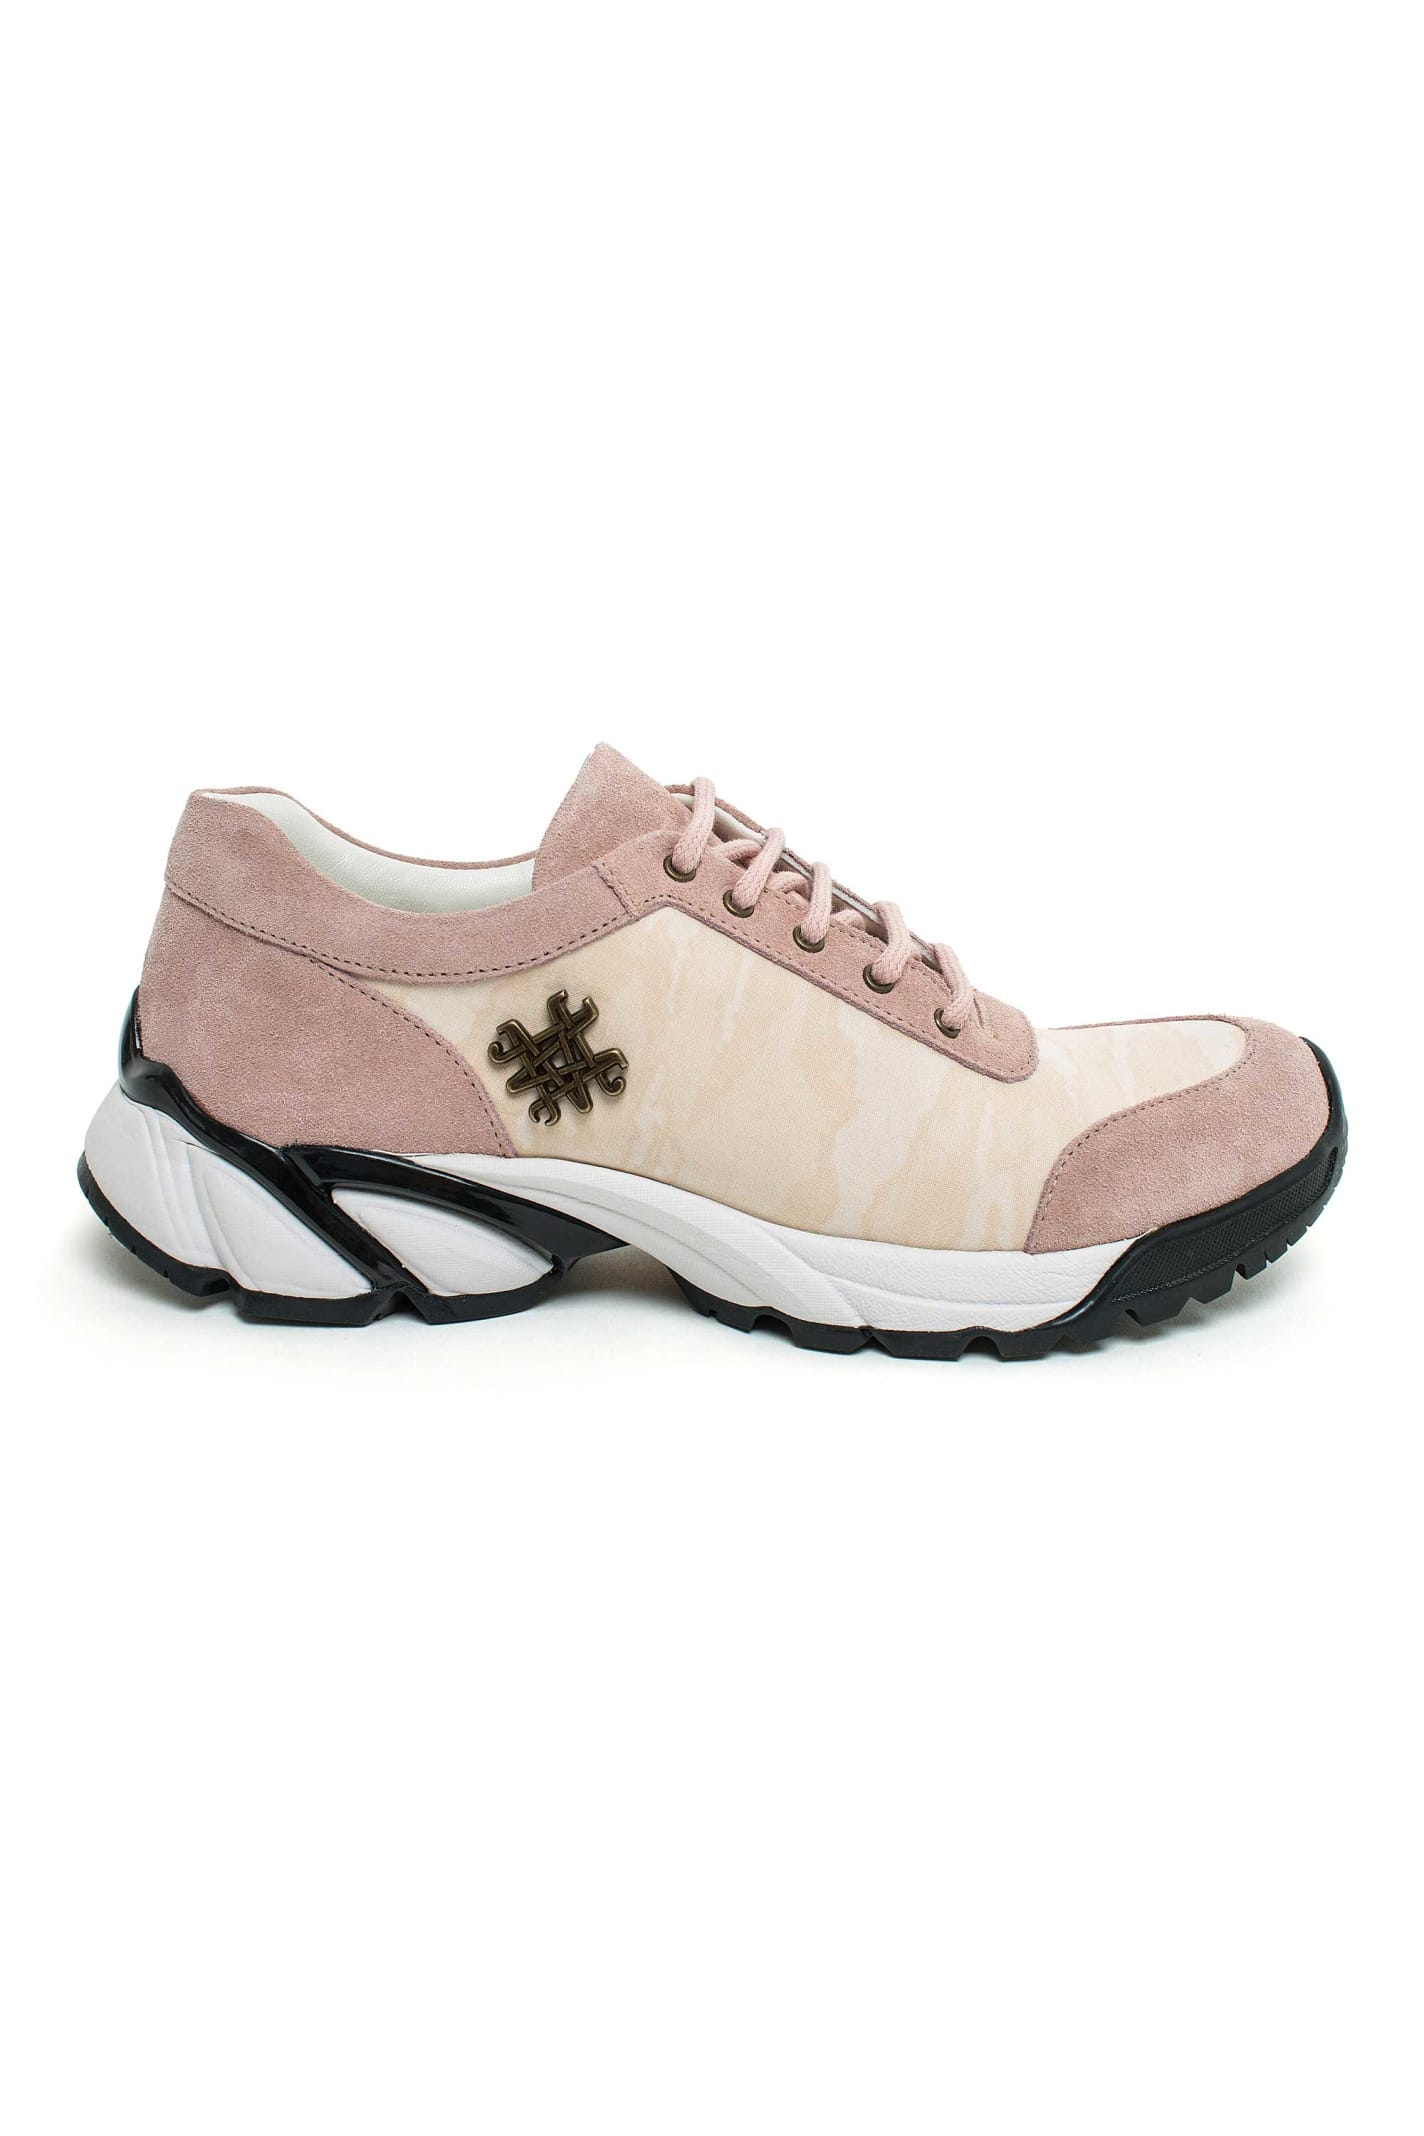 Mr & Mrs Italy Camou Canvas Sneakers